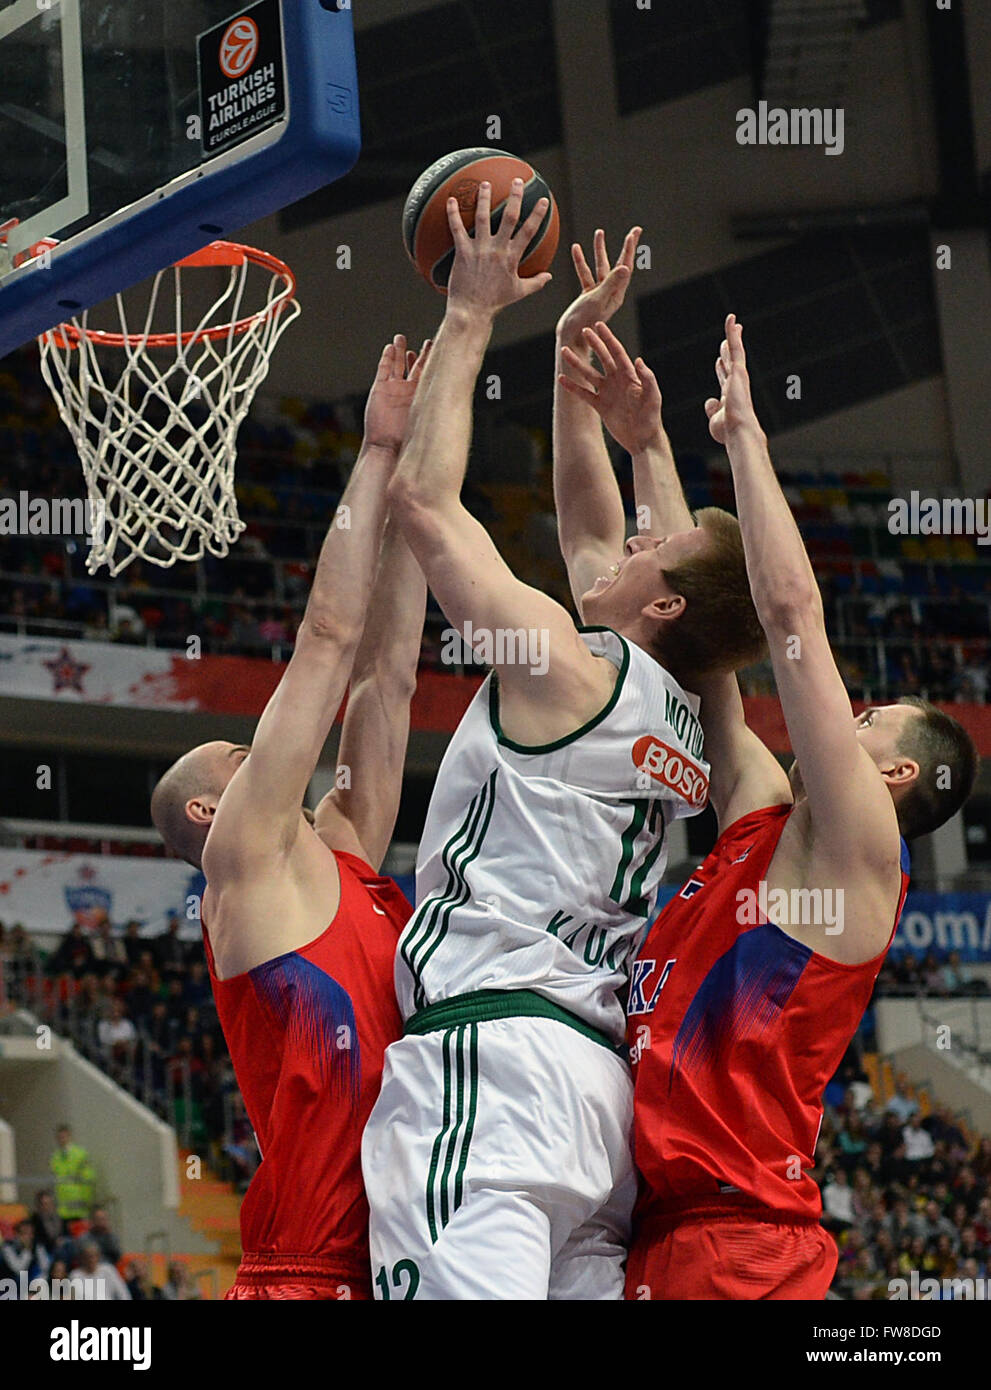 Moscow, Russia. 1st April, 2016. Brock Motum of Zalgiris (C) vies with Pavel Korobkov (L) and Vitaly Fridzon of - Stock Image